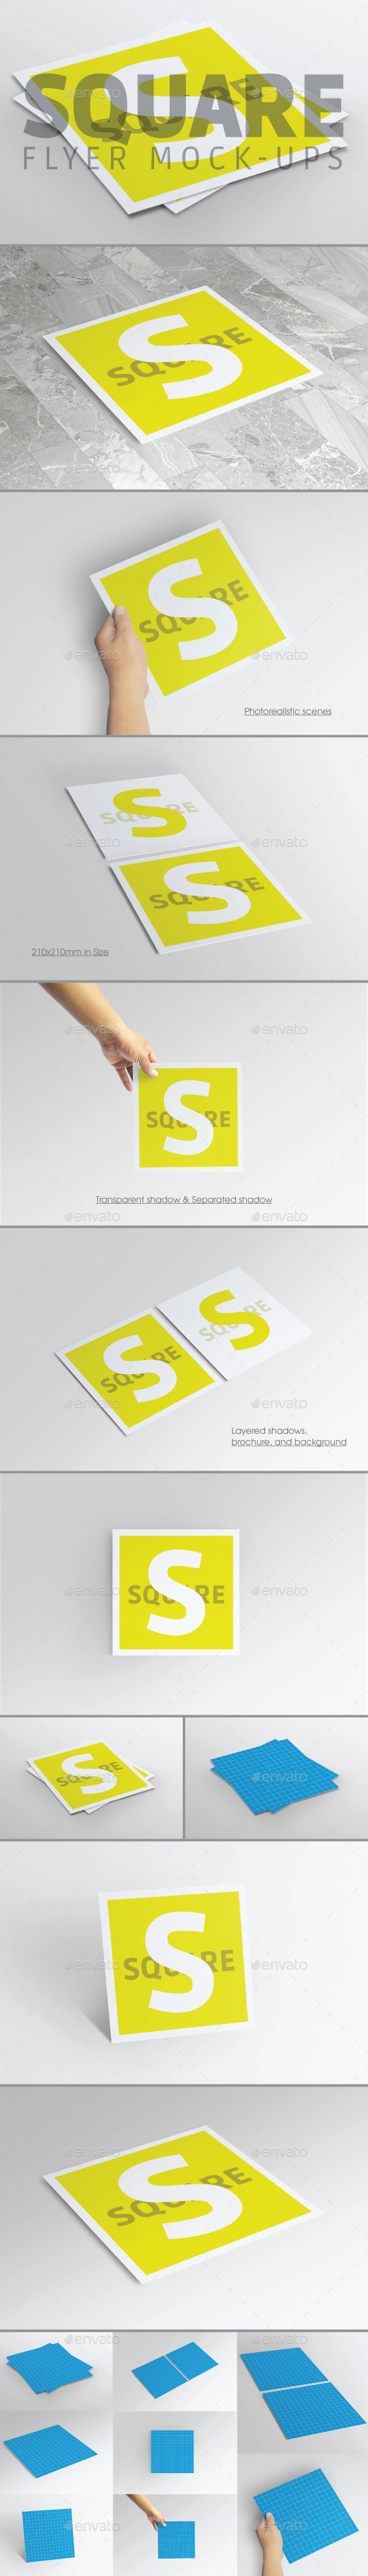 Square Flyer Mock-Up - Brochures Print